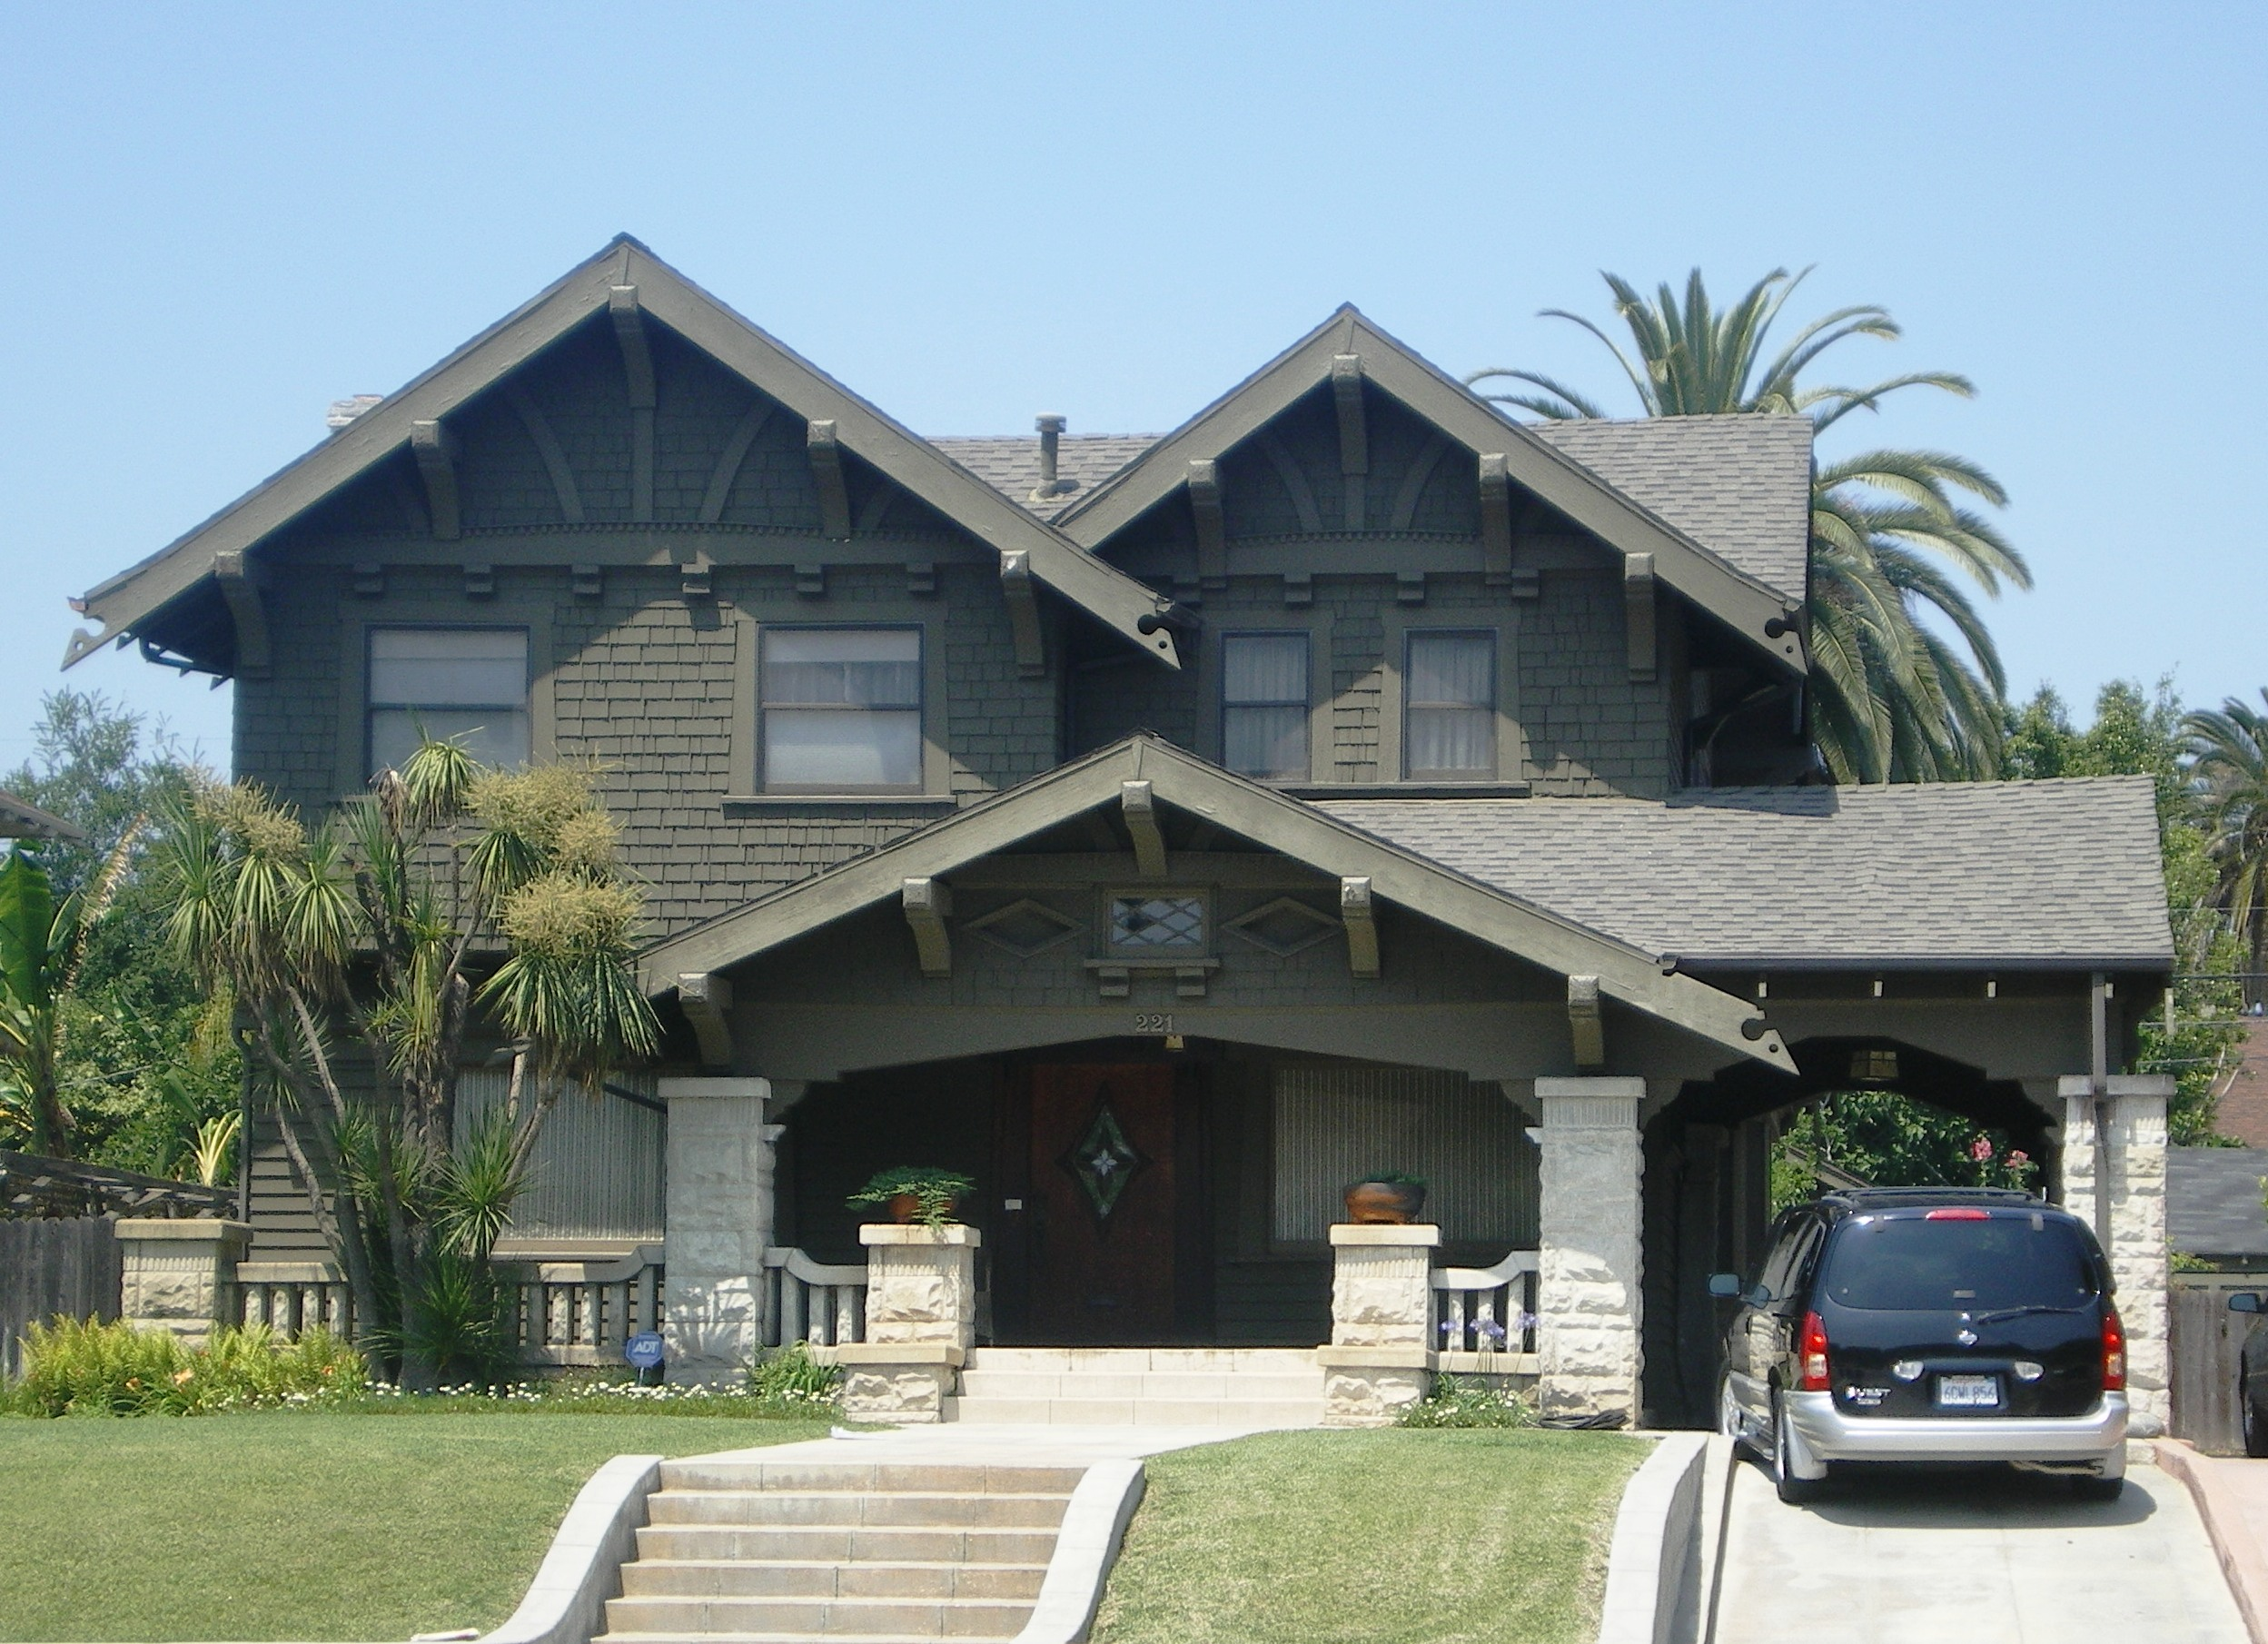 File house at 221 wilton los angeles jpg wikimedia commons for California los angeles houses